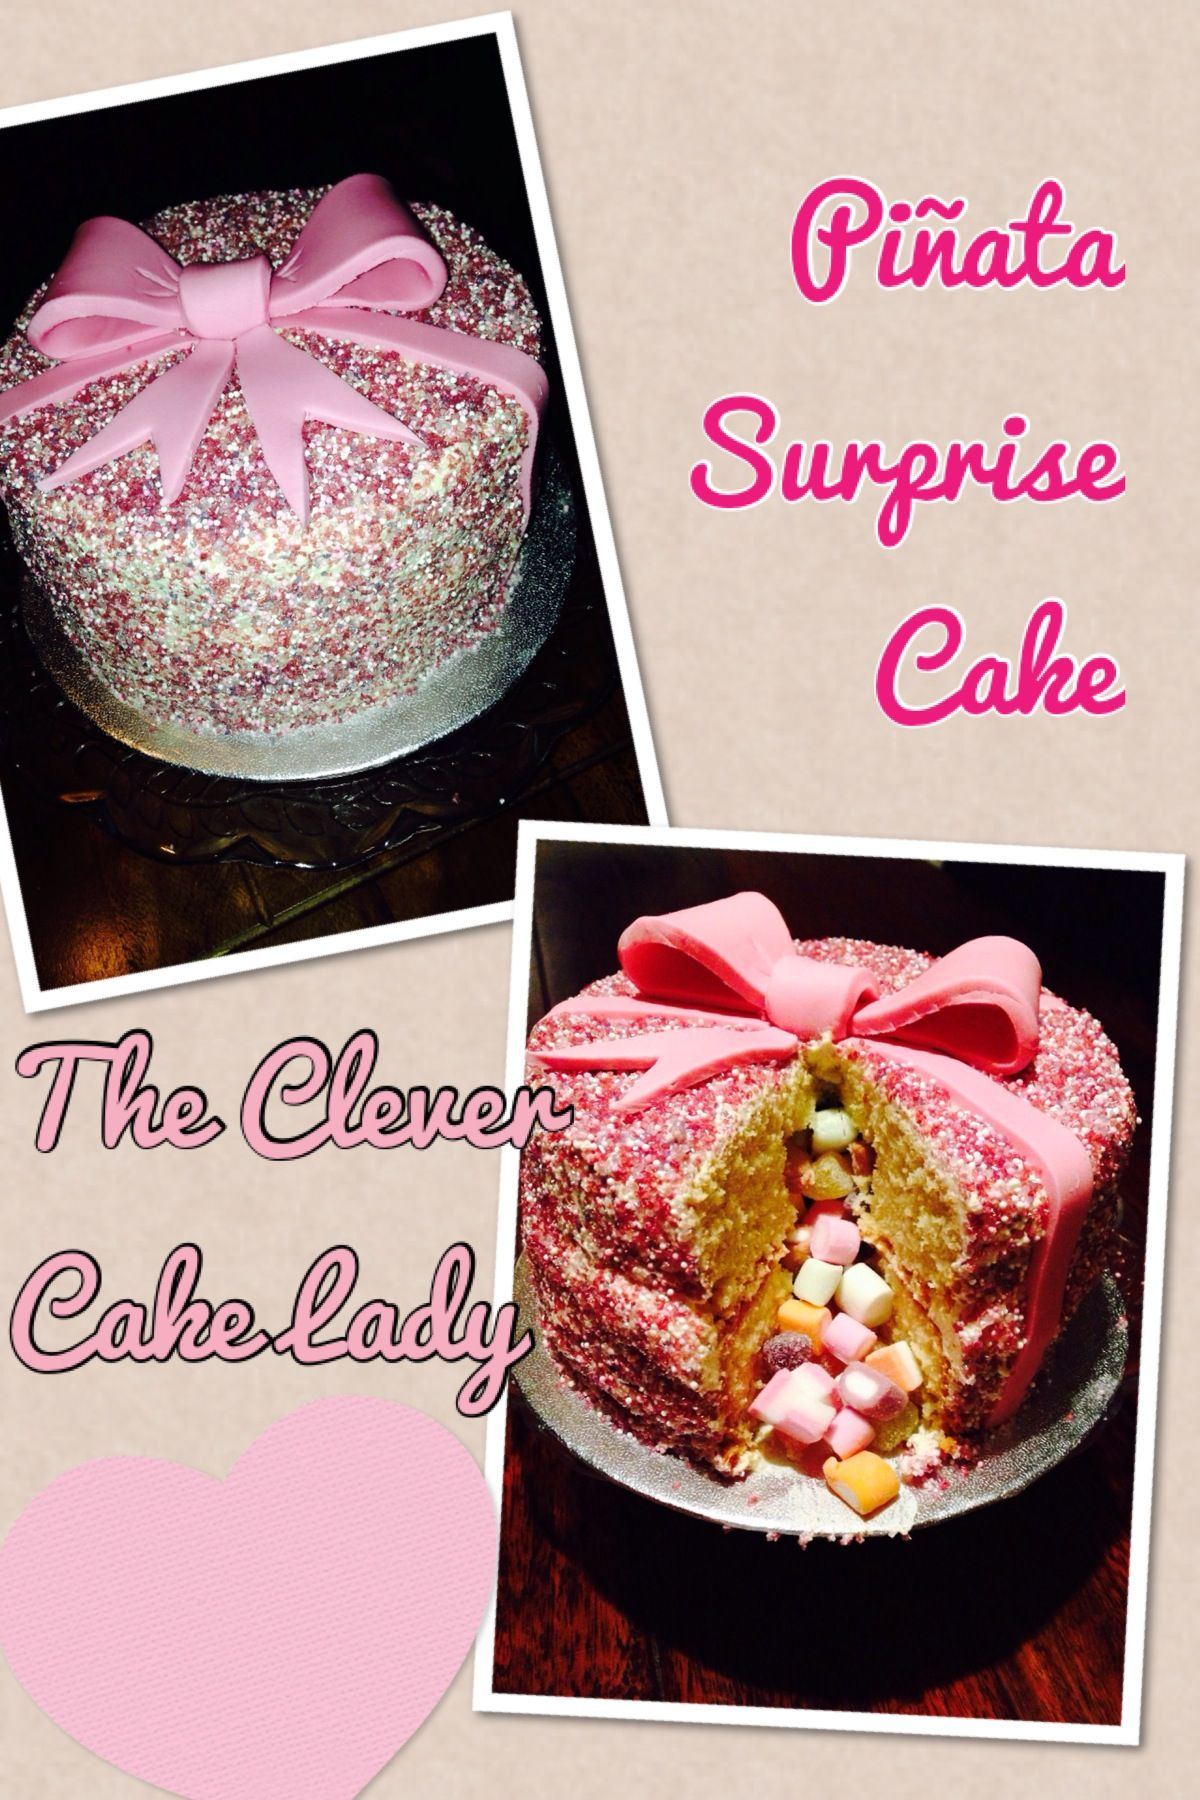 Pinata Surprise Inside Cake Sponge Cake Layered With